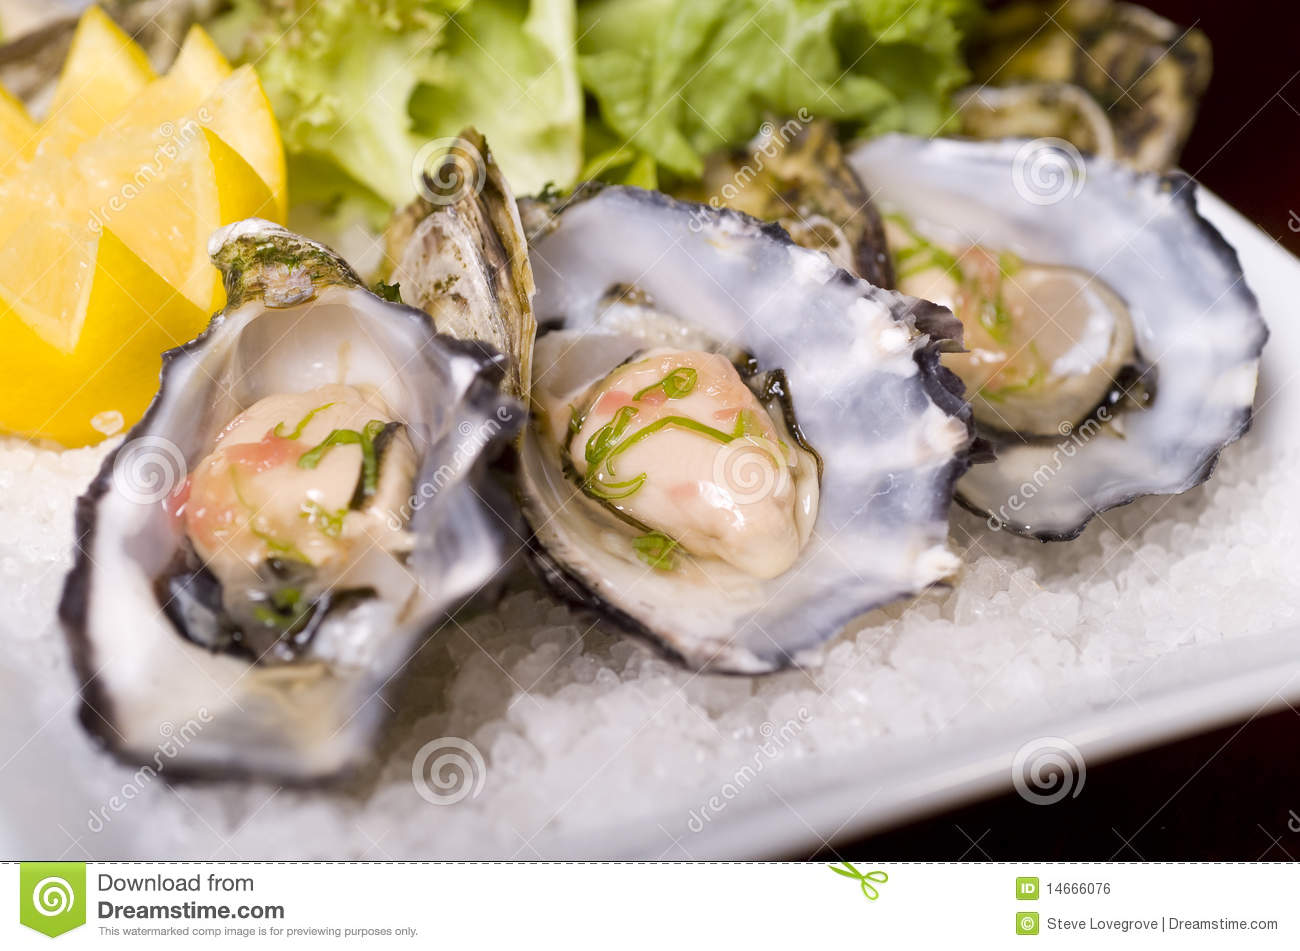 Fresh raw oysters - photo#27